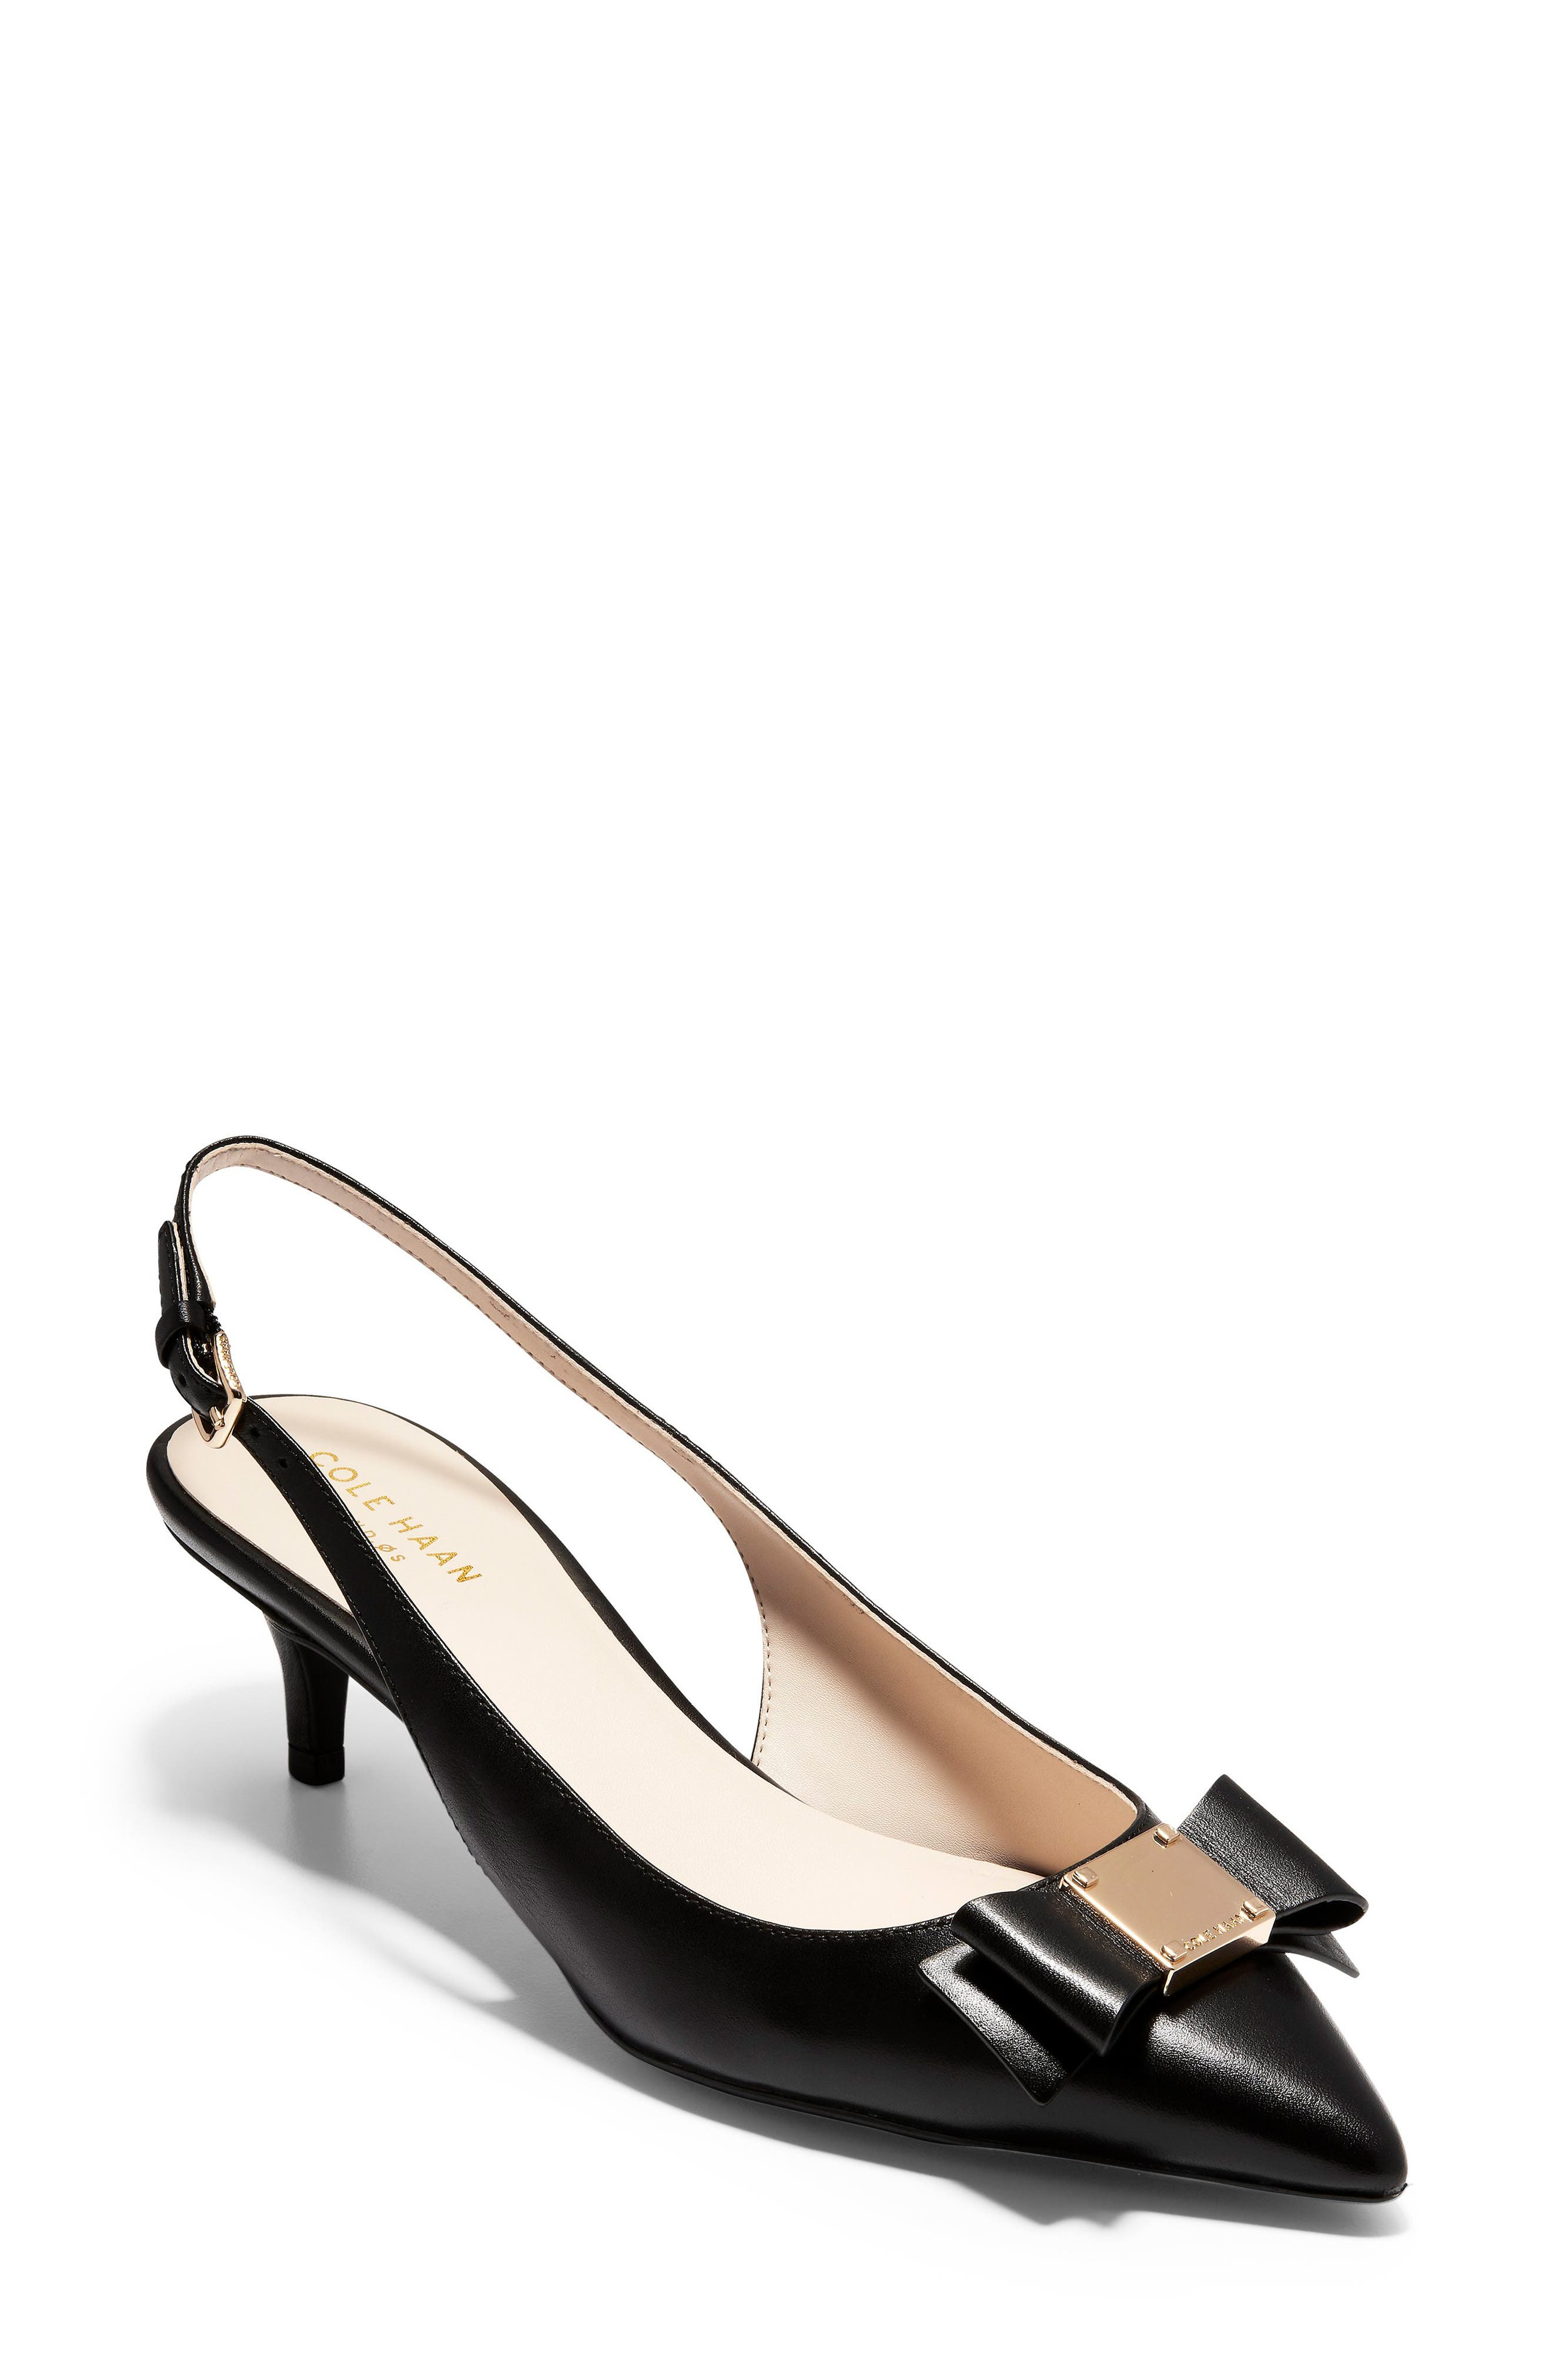 COLE HAAN Tali Bow Slingback Pump, Main, color, BLACK LEATHER